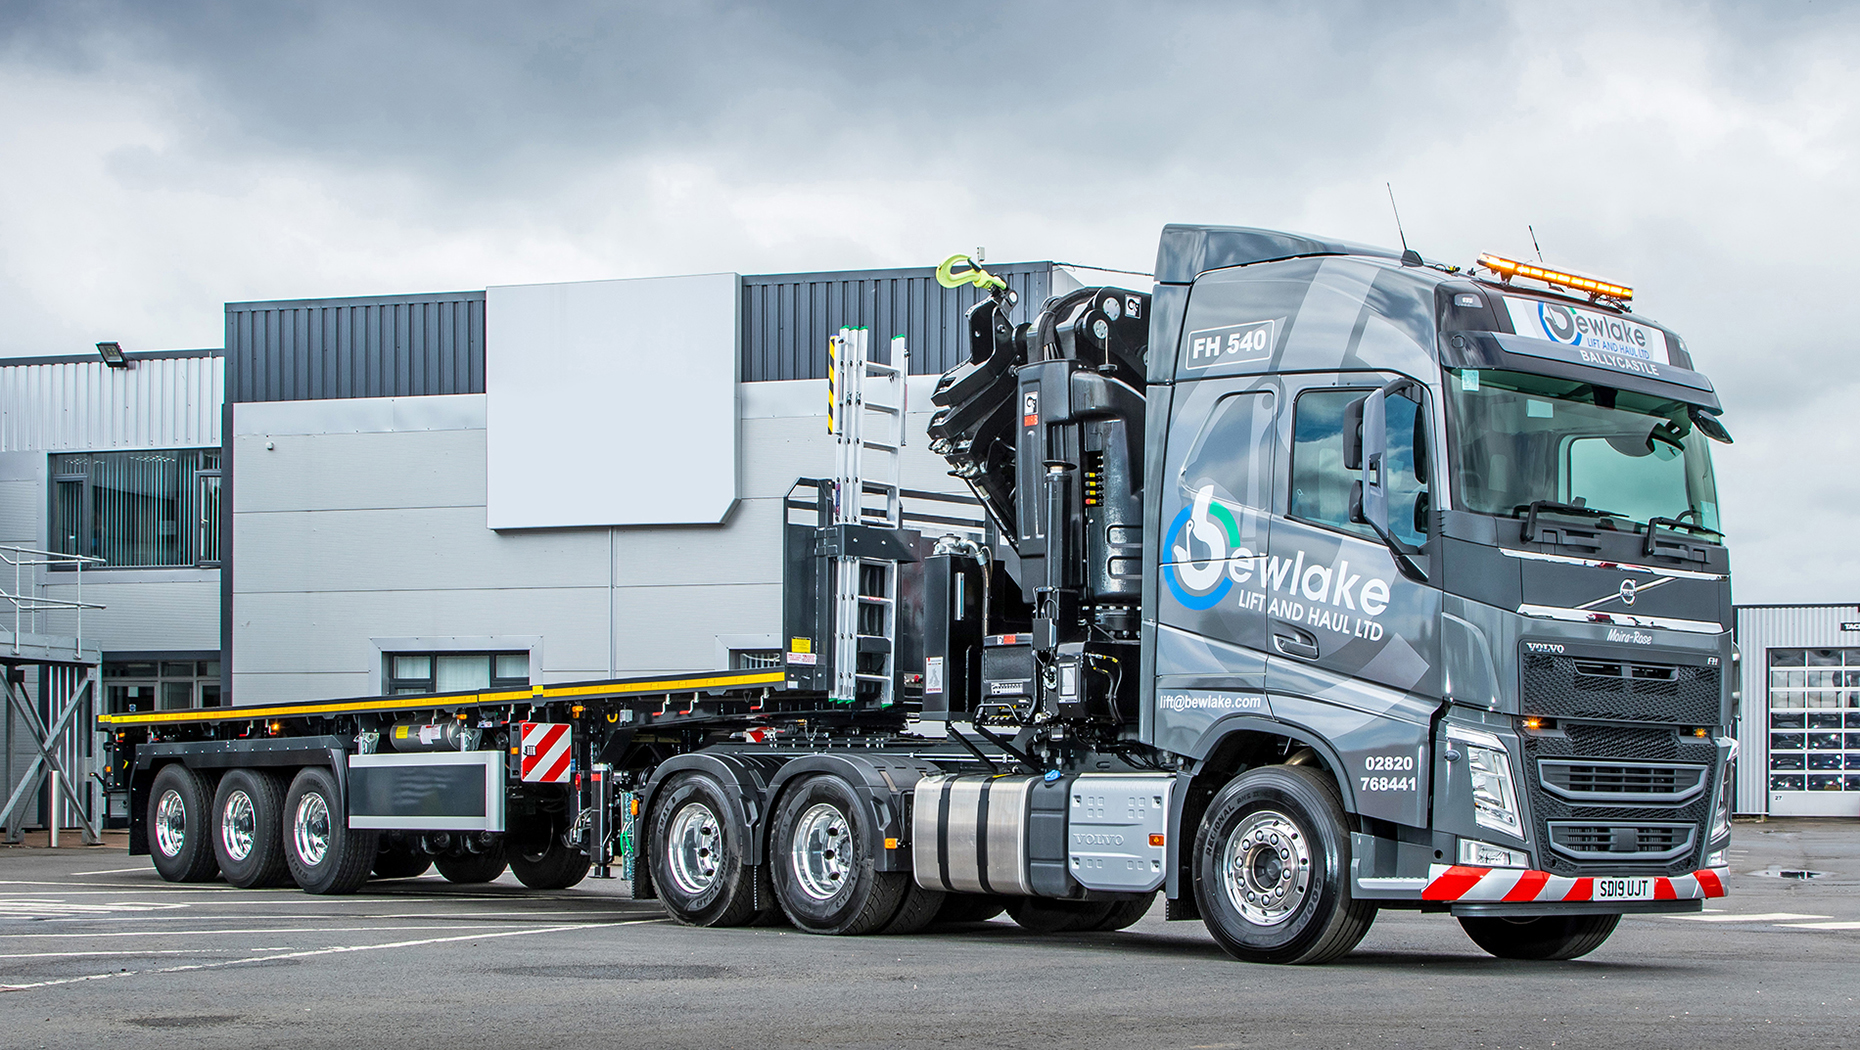 A new Volvo FH helps launch a new business at Bewlake Lift and Haul Ltd